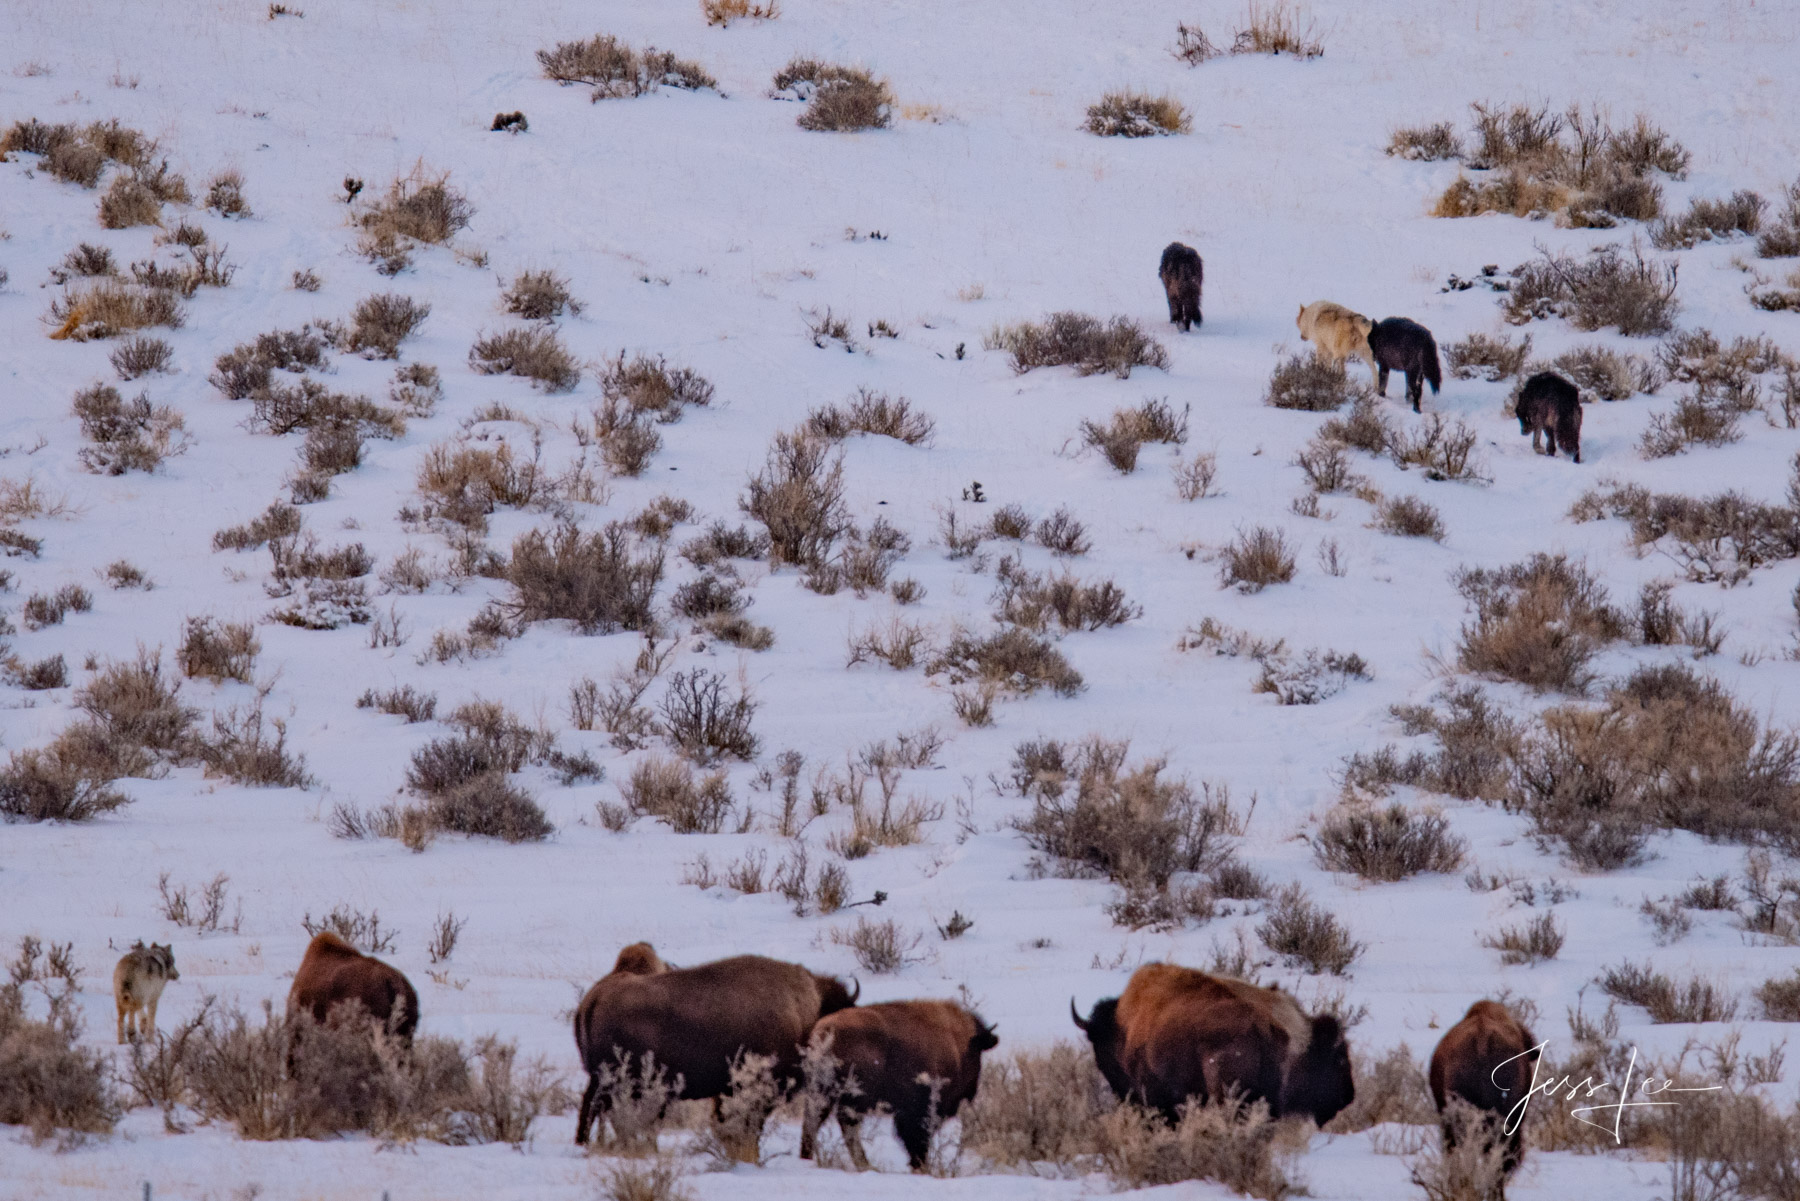 Yellowstone, winter, photography, wildlife, wolves, moose, elk, bison, otters, coyotes, snow, cold, awesome, jess lee, photography,, photo